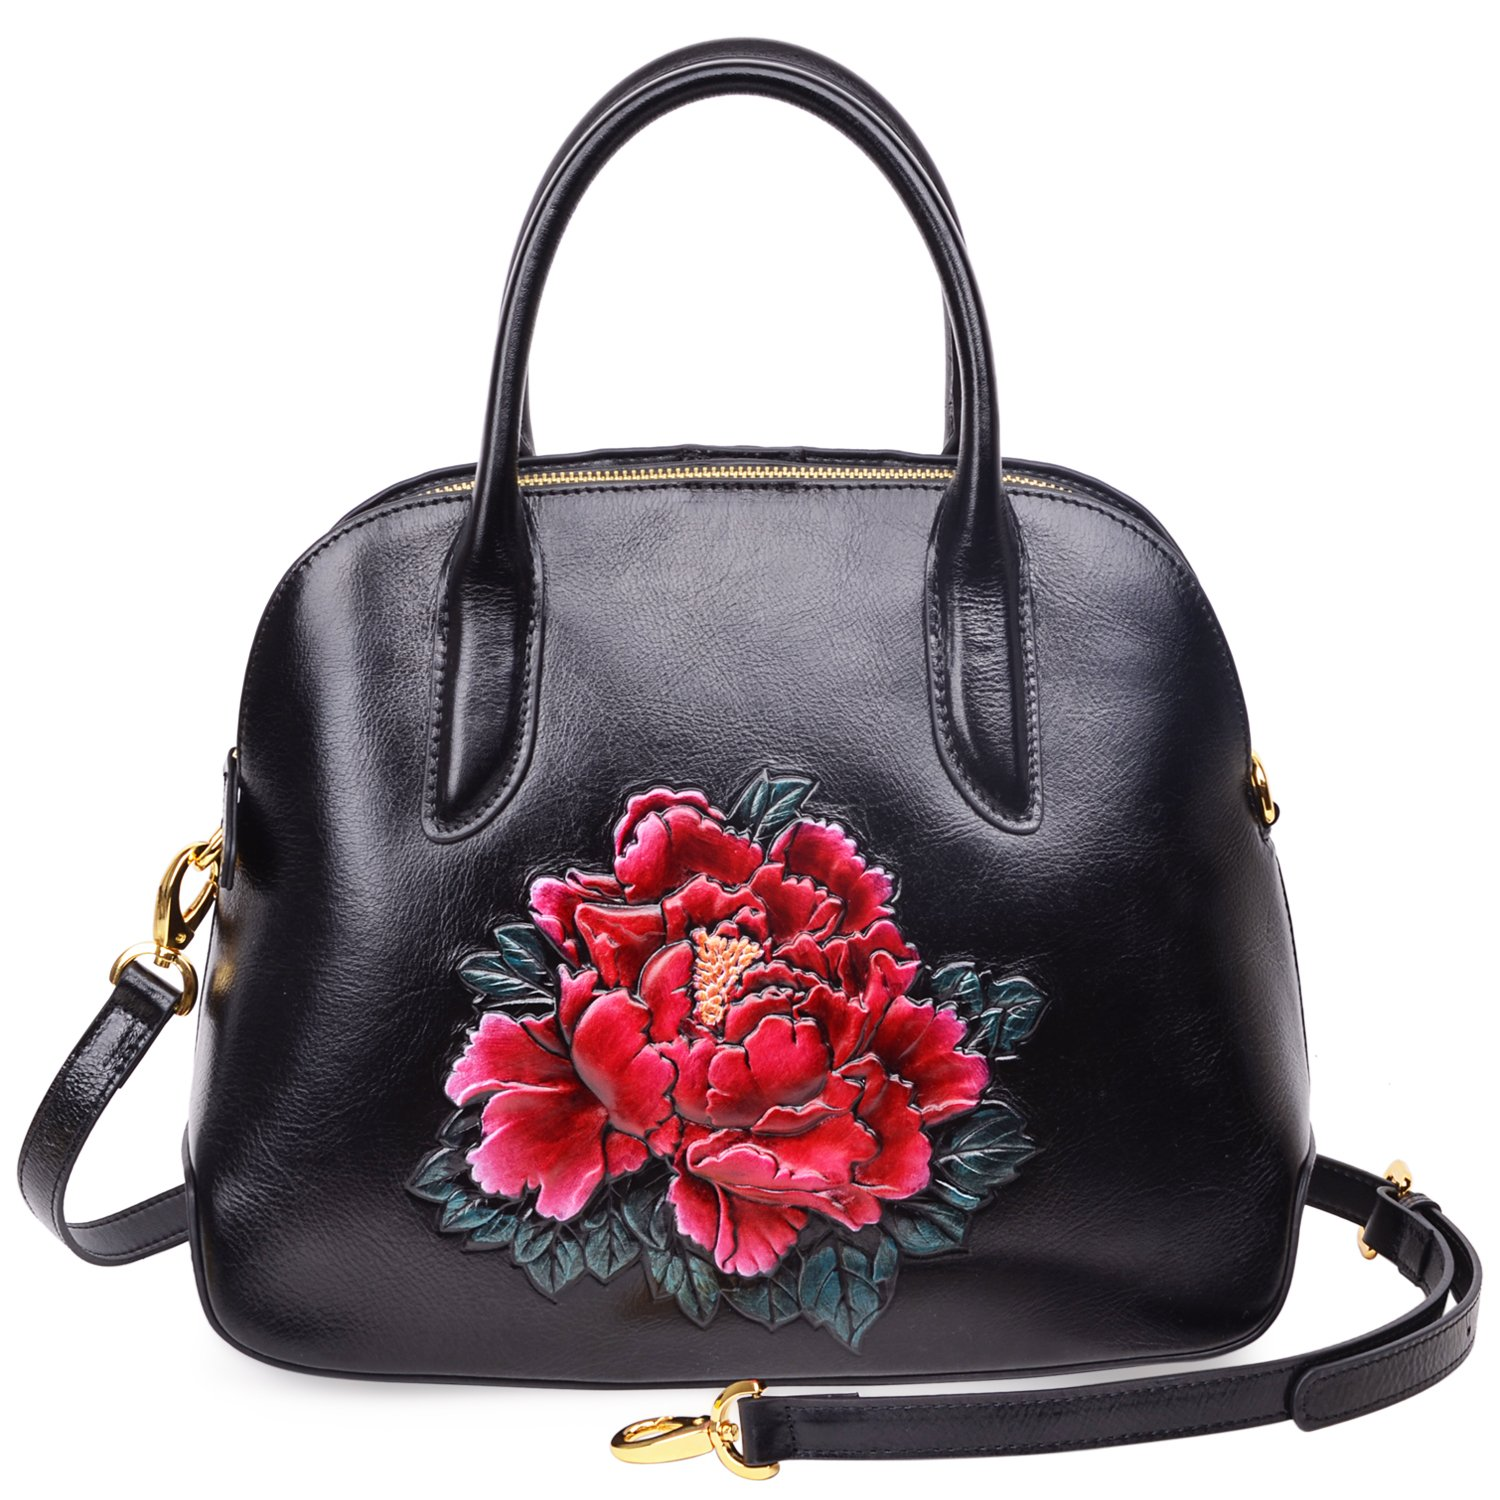 PIJUSHI Genuine Leather Tote Satchel Handbags Floral Top Handle Bag for Women 33091(One Size, Black/Red)